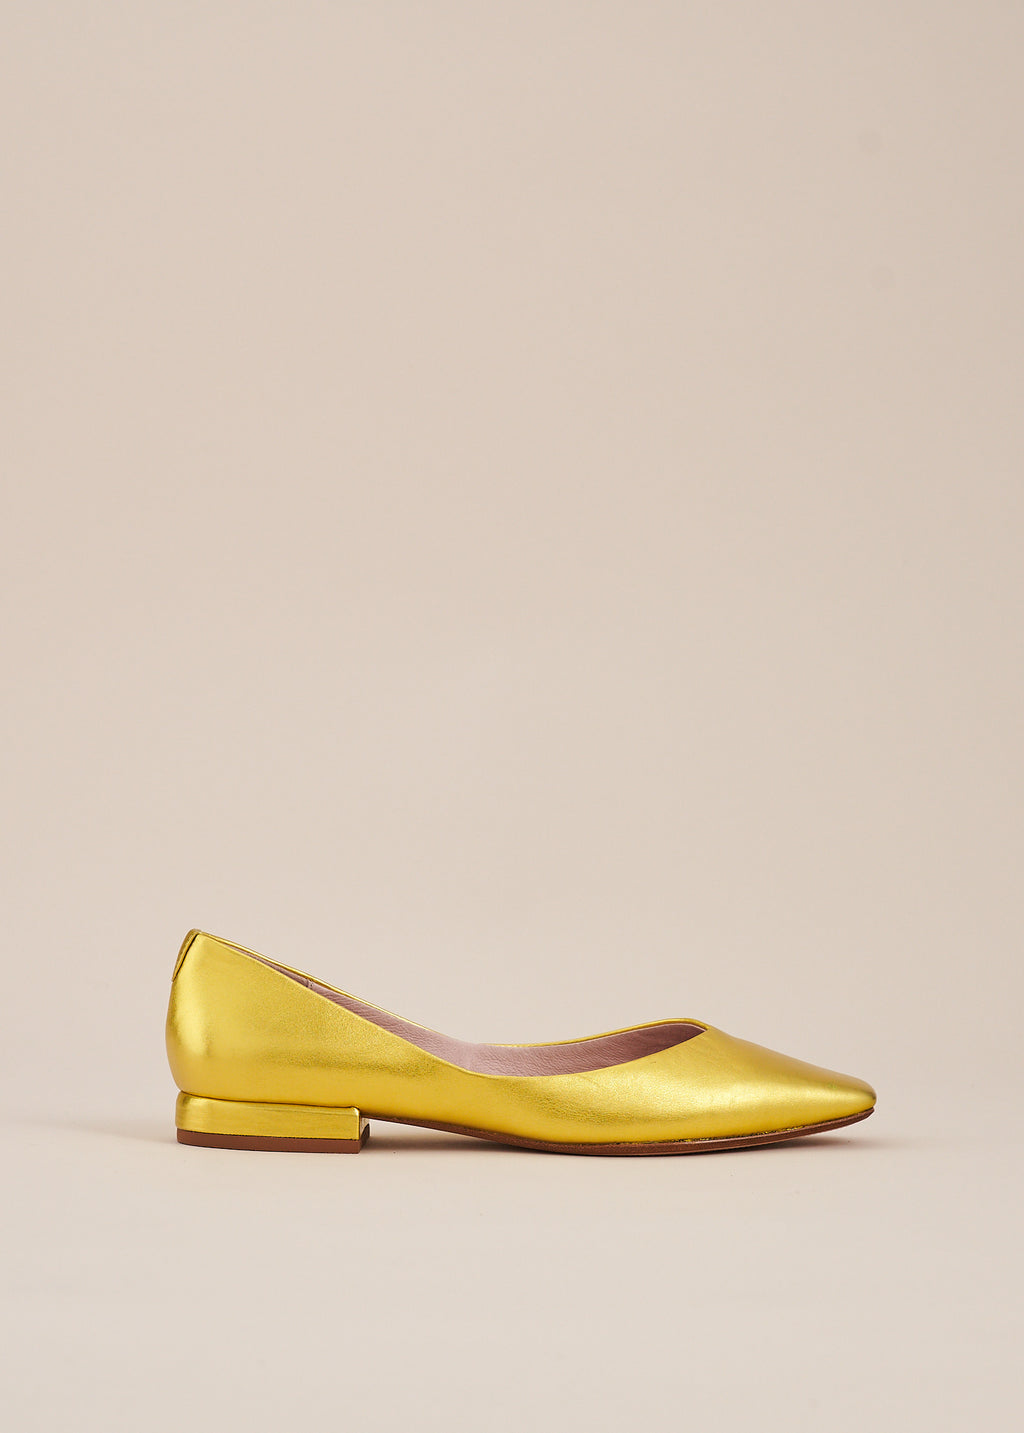 Polly by Miss L Fire in gold metallic leather is the perfect, pared down, elegant  ballet flat that you will want to wear every day. Ethically made.